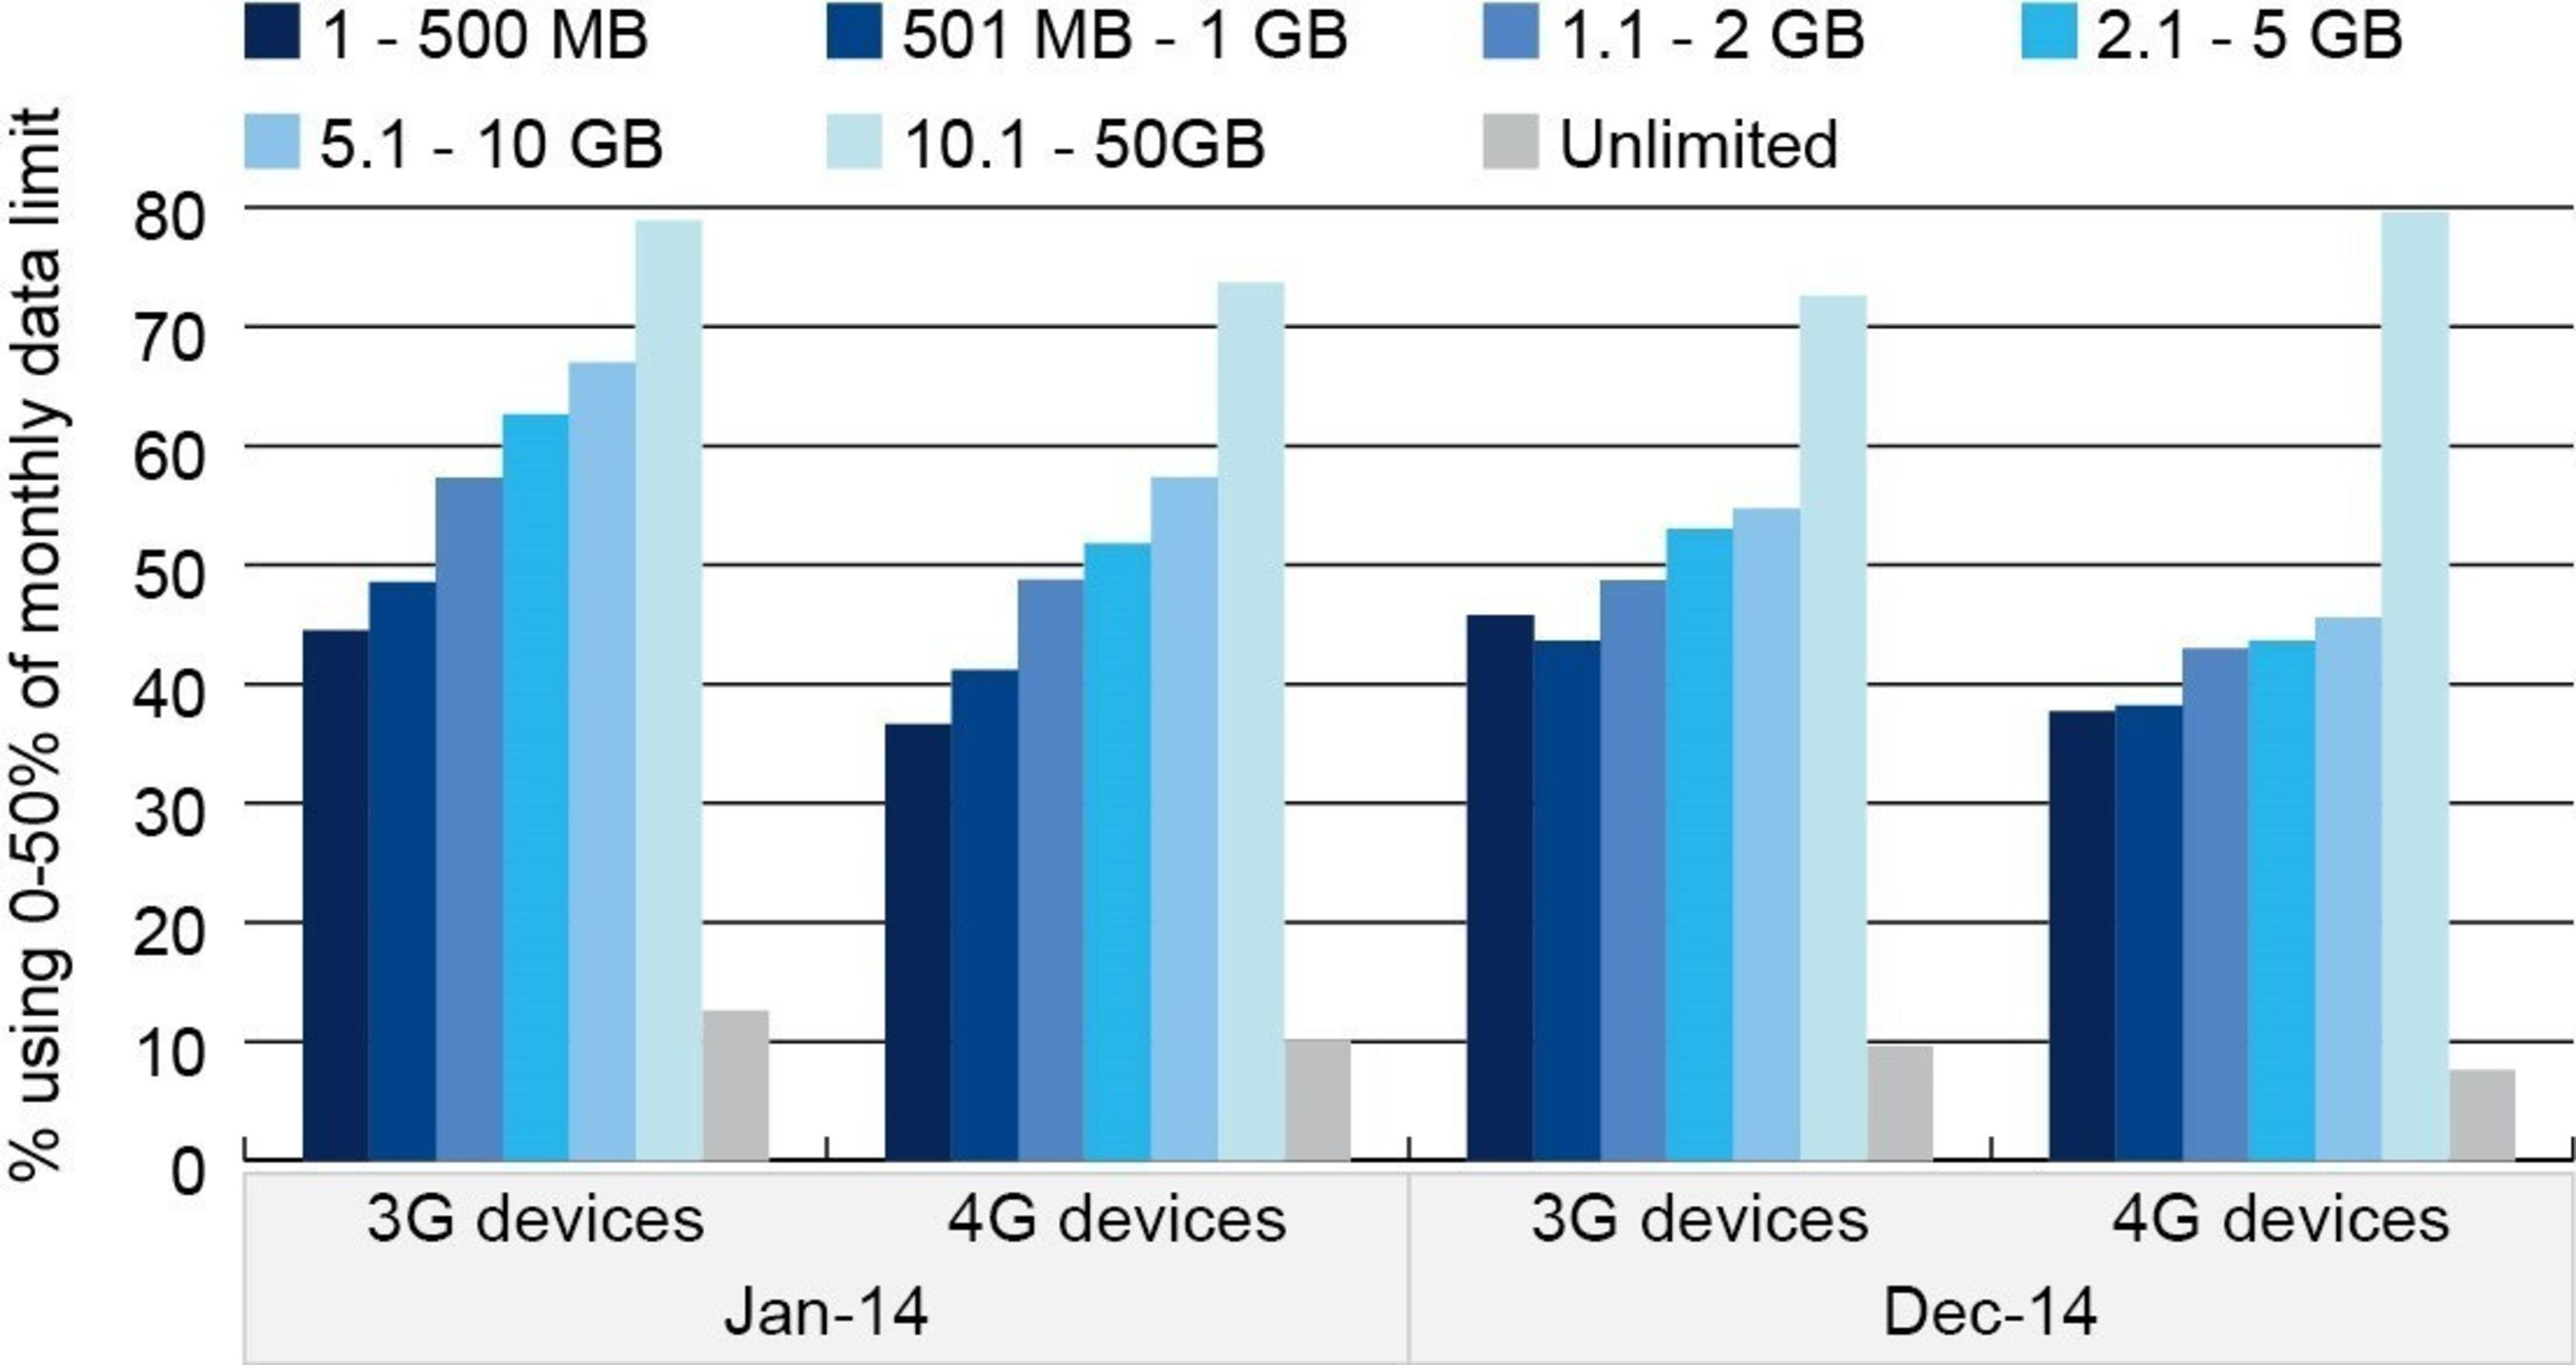 Global Share of Android Smartphone Users Using 0-50 percent of Monthly Data Limit by Plan Size, Jan-14 and Dec-14